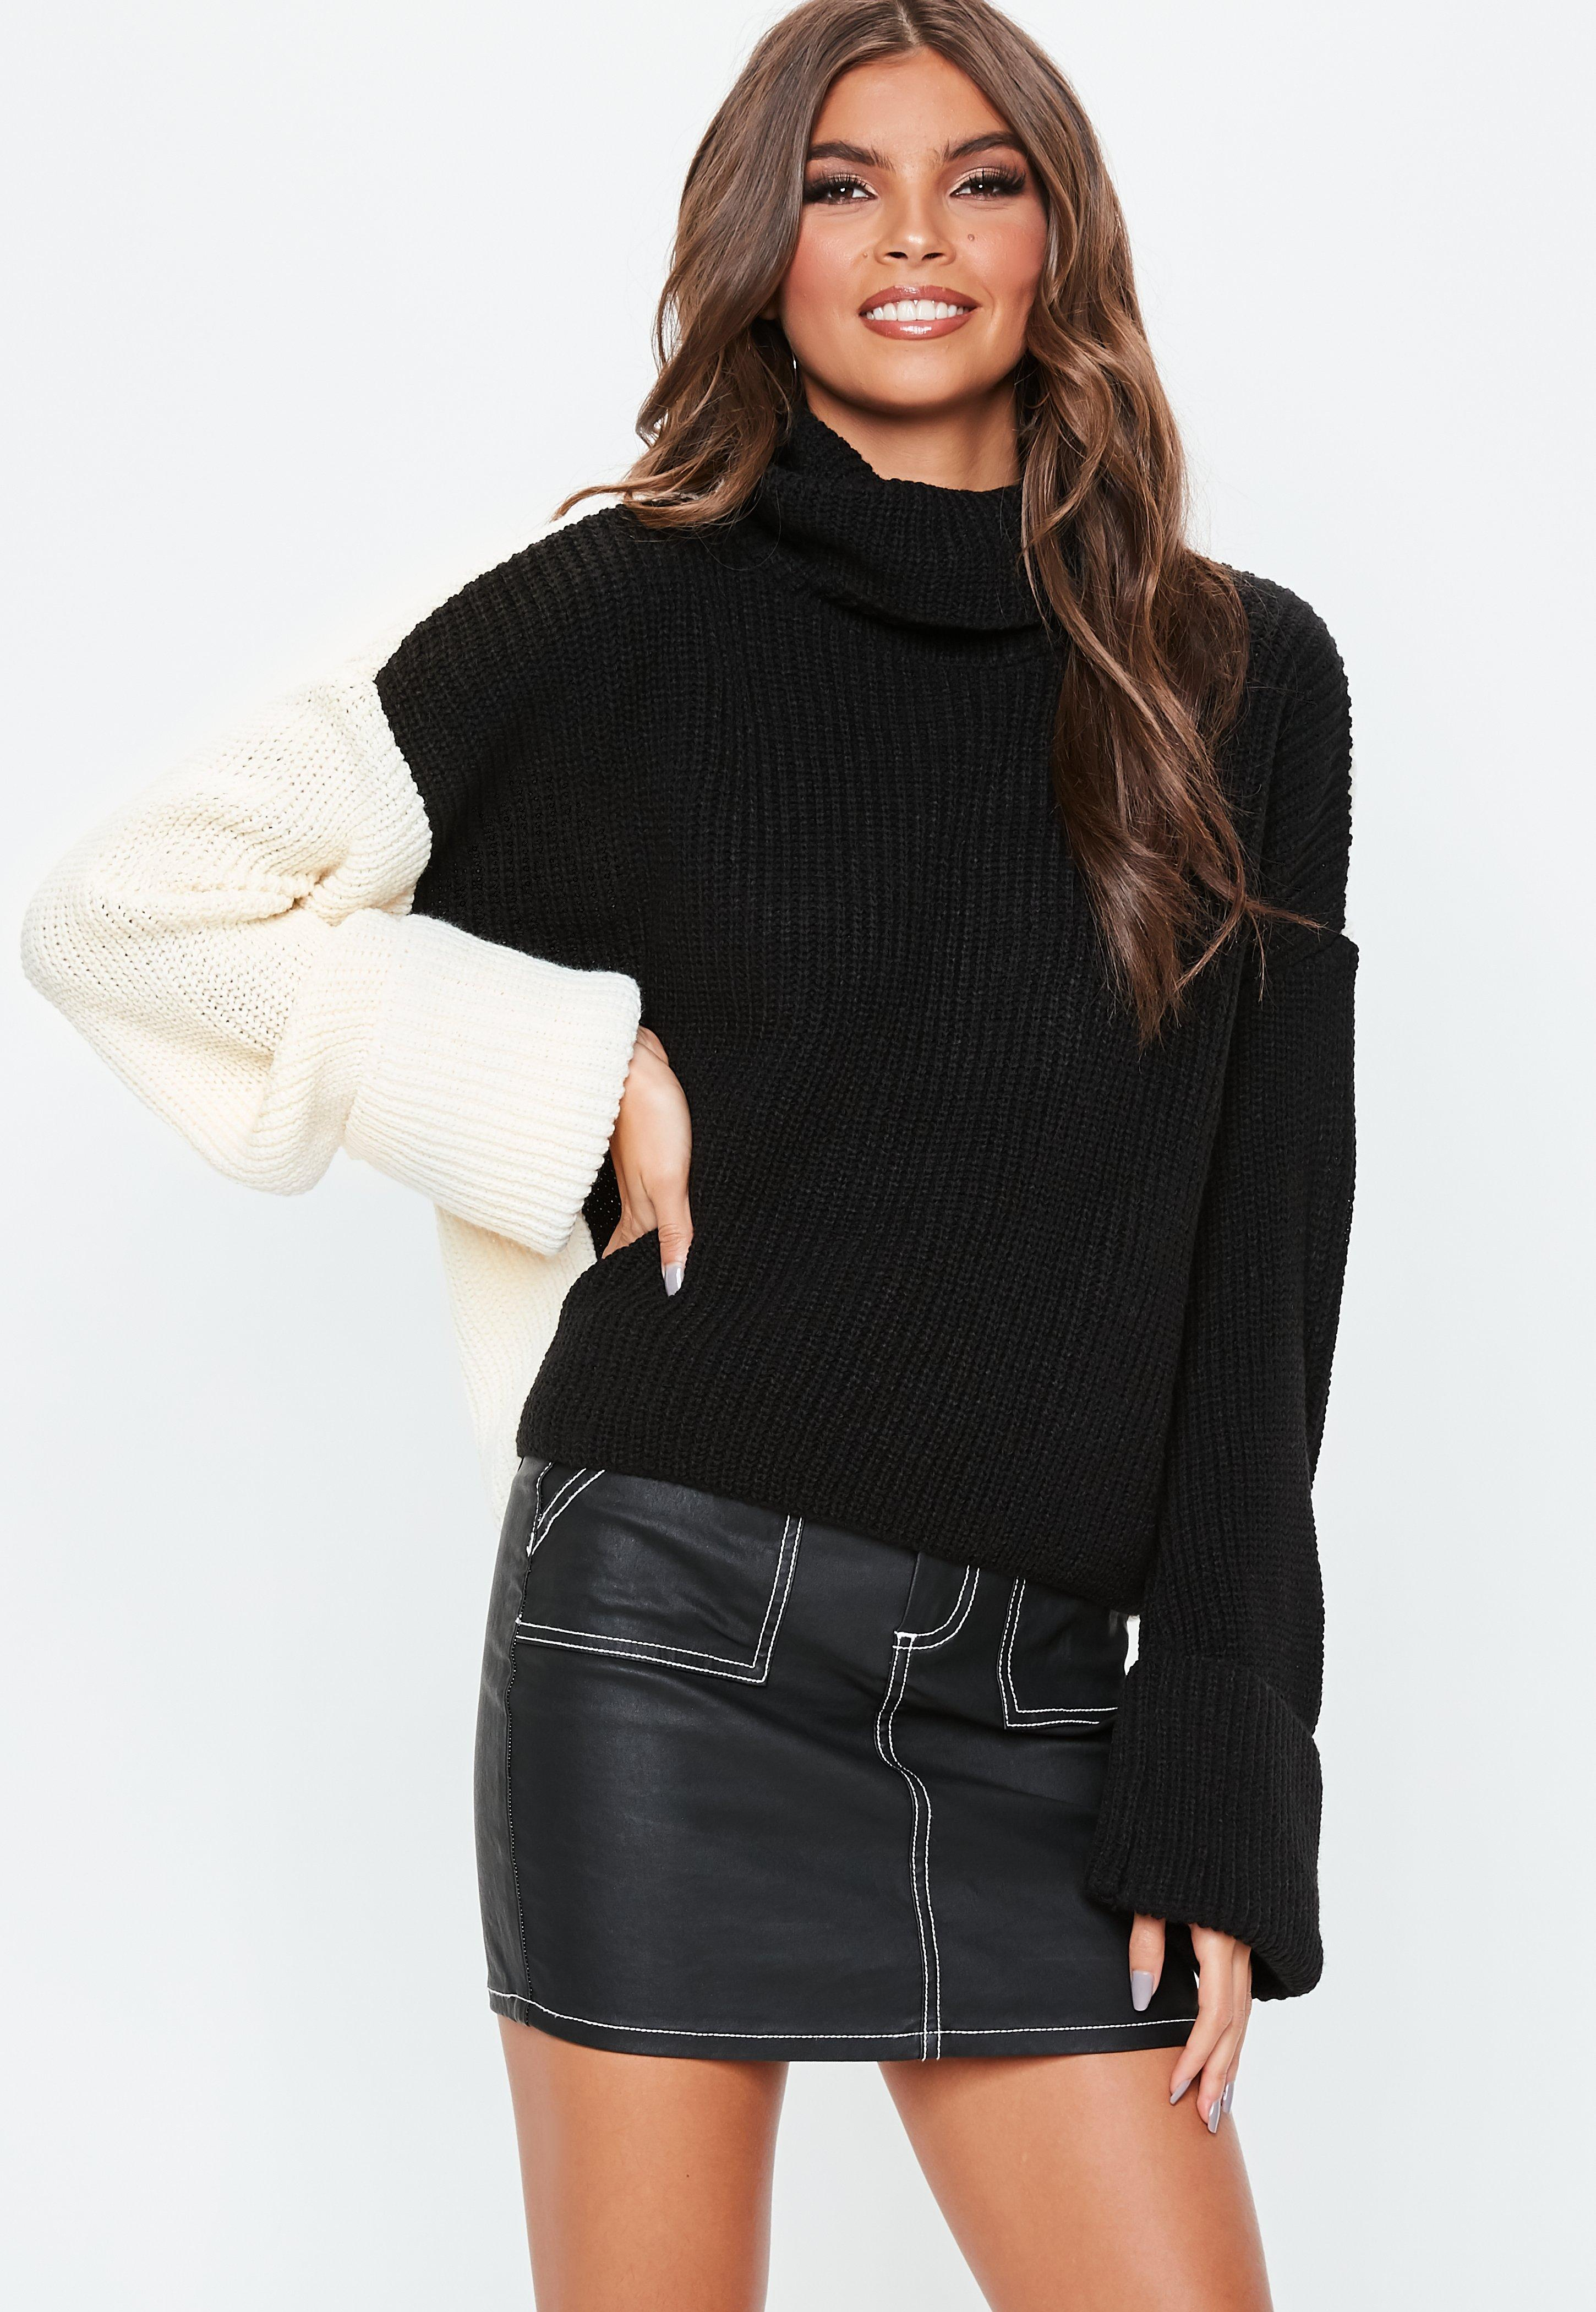 Lyst - Missguided Tall Black Colour Block Roll Neck Jumper in Black 09e574a36